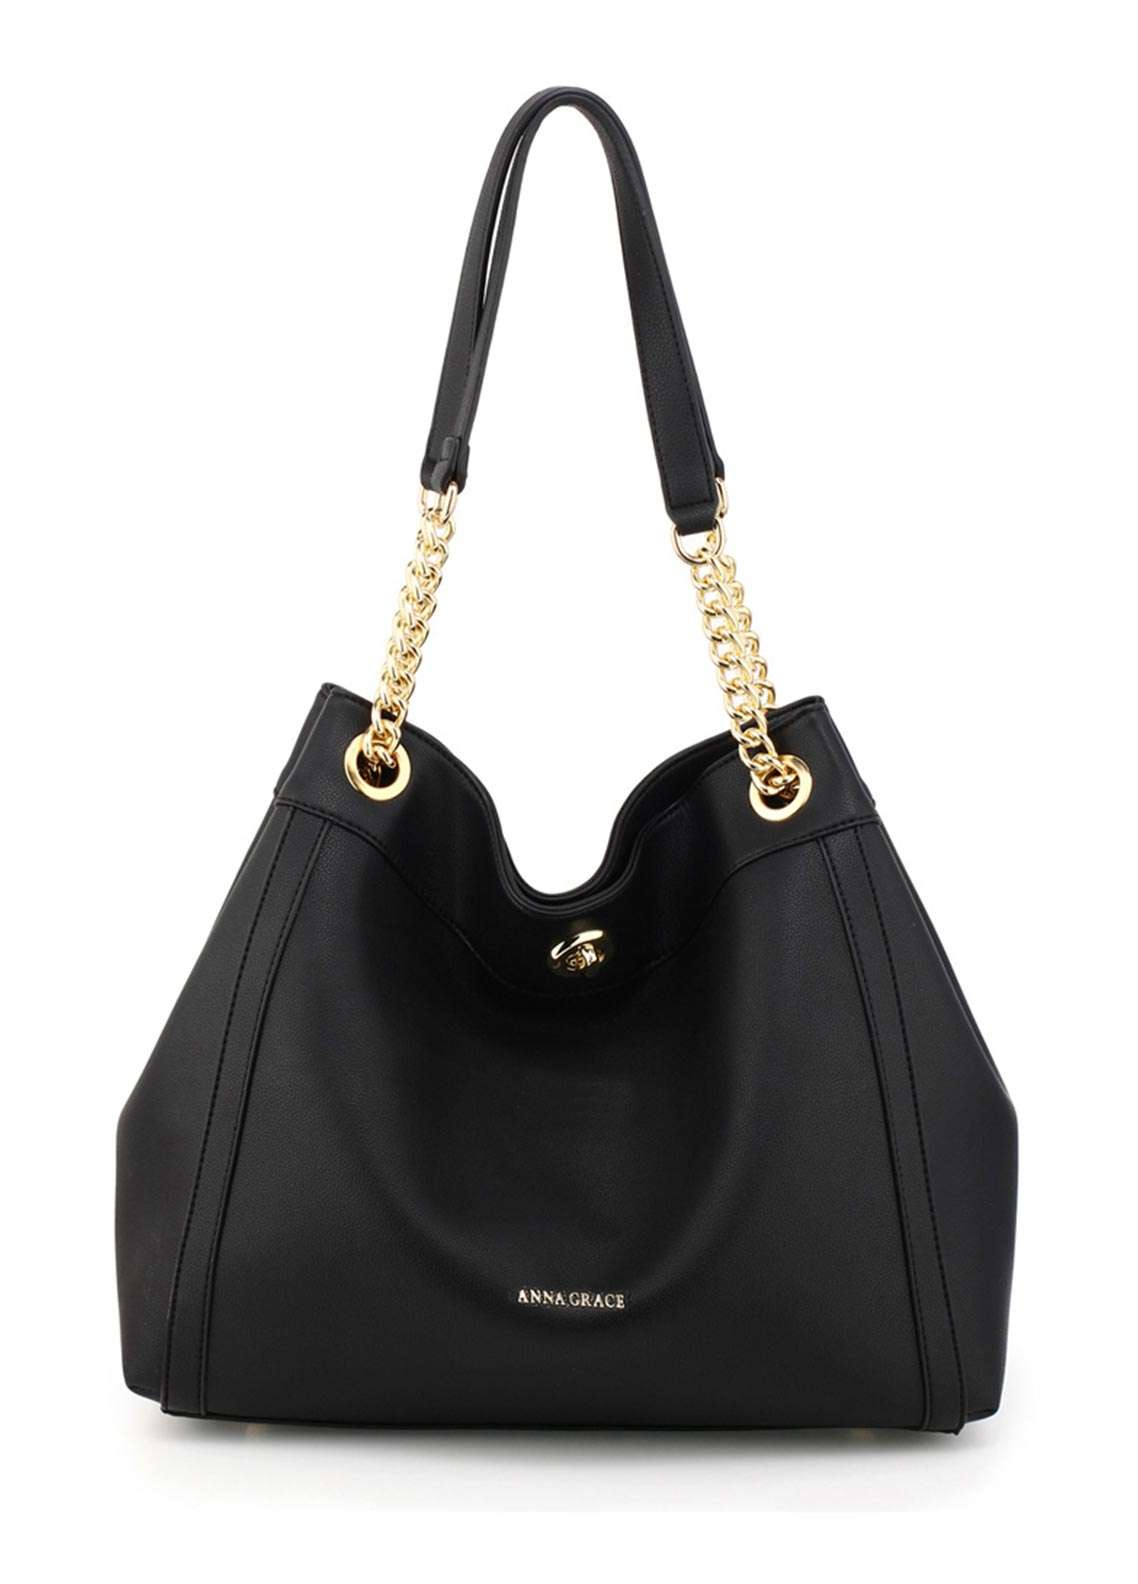 Anna Grace London Faux Leather Hobo Bags for Women Black with Smooth Texture